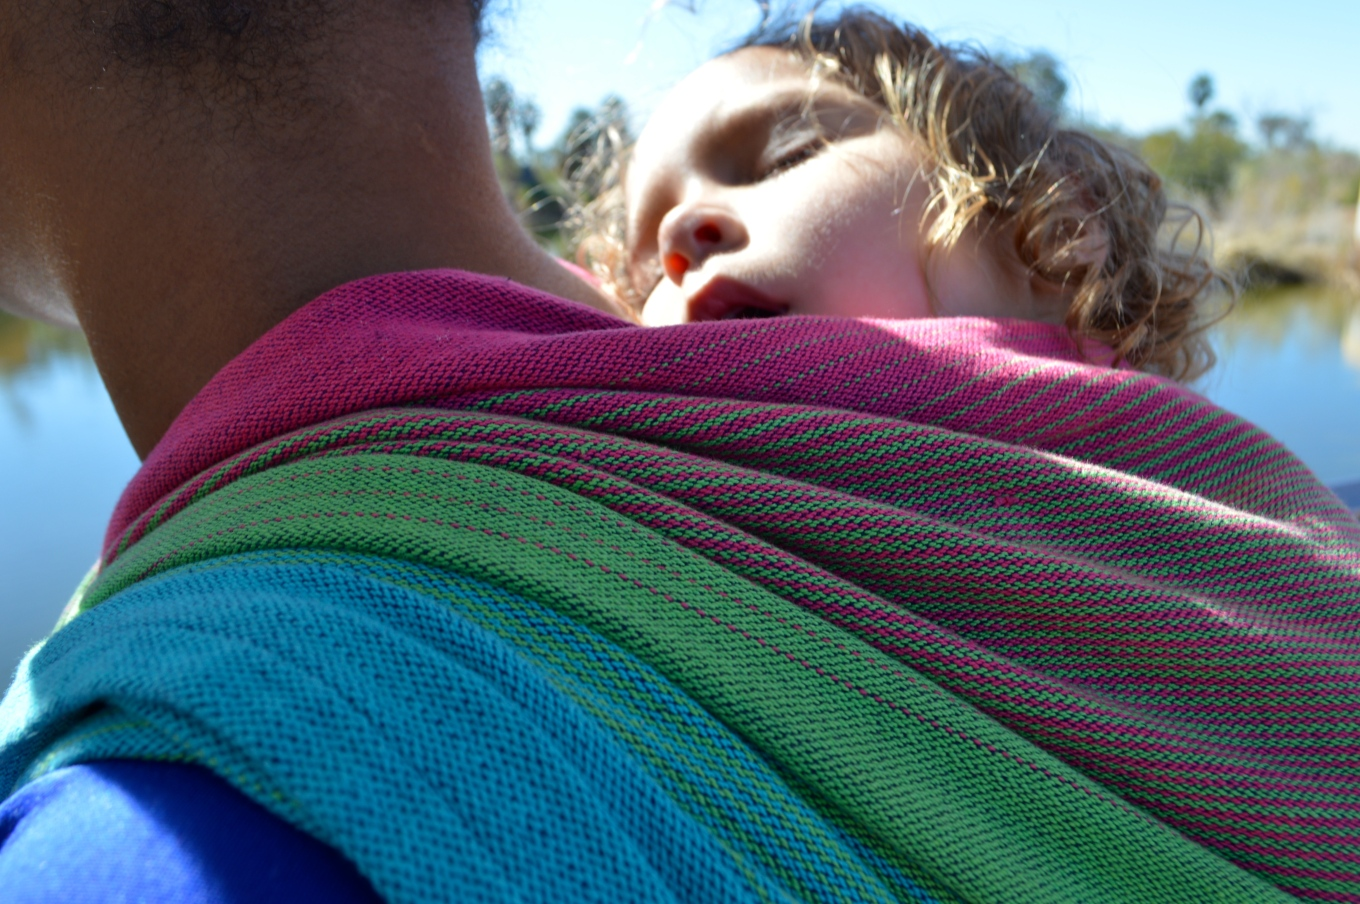 close up shot of sleeping baby face on Momma's shoulder with the wrap pleated at her shoulder